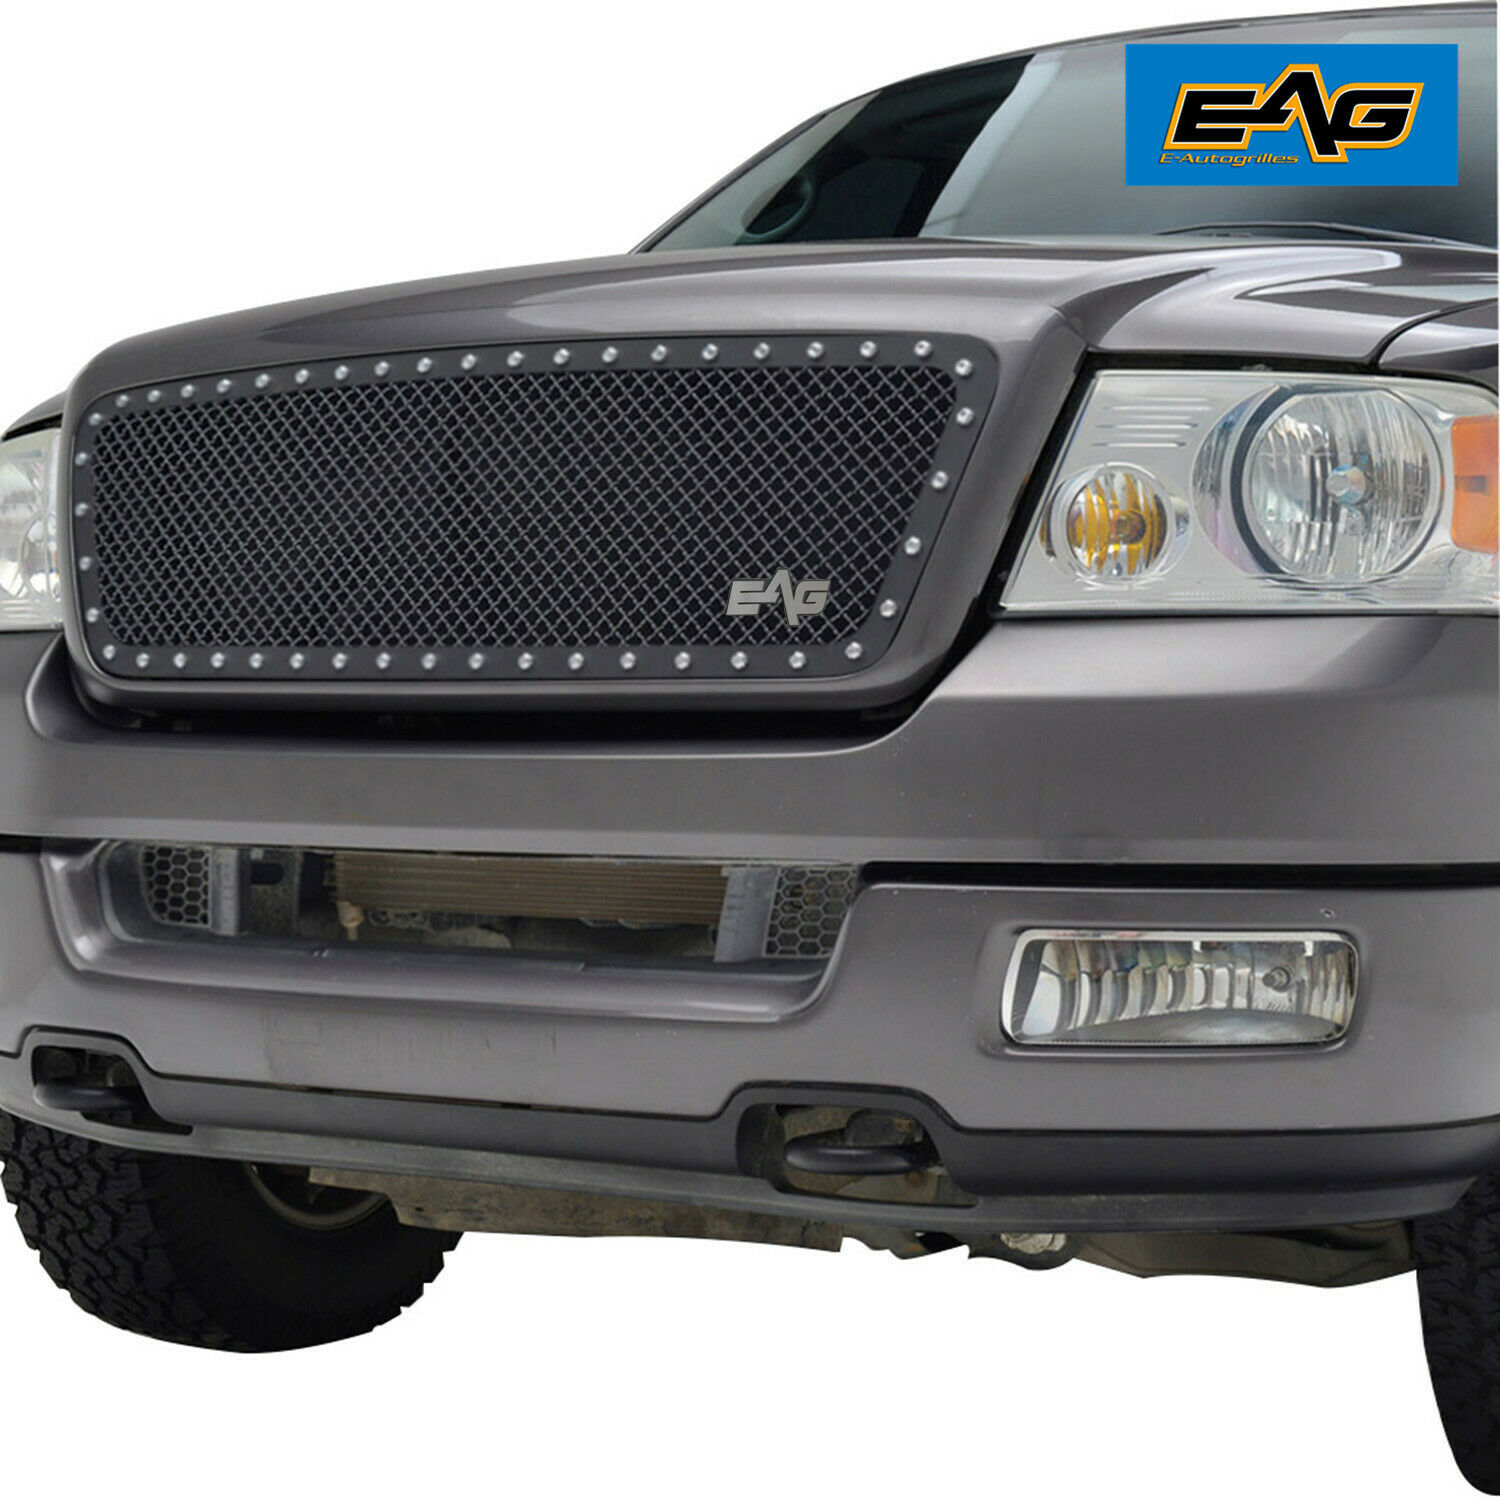 04 08 ford f150 grill black stainless steel mesh rivet grille grill insert 1 of 8free shipping see more